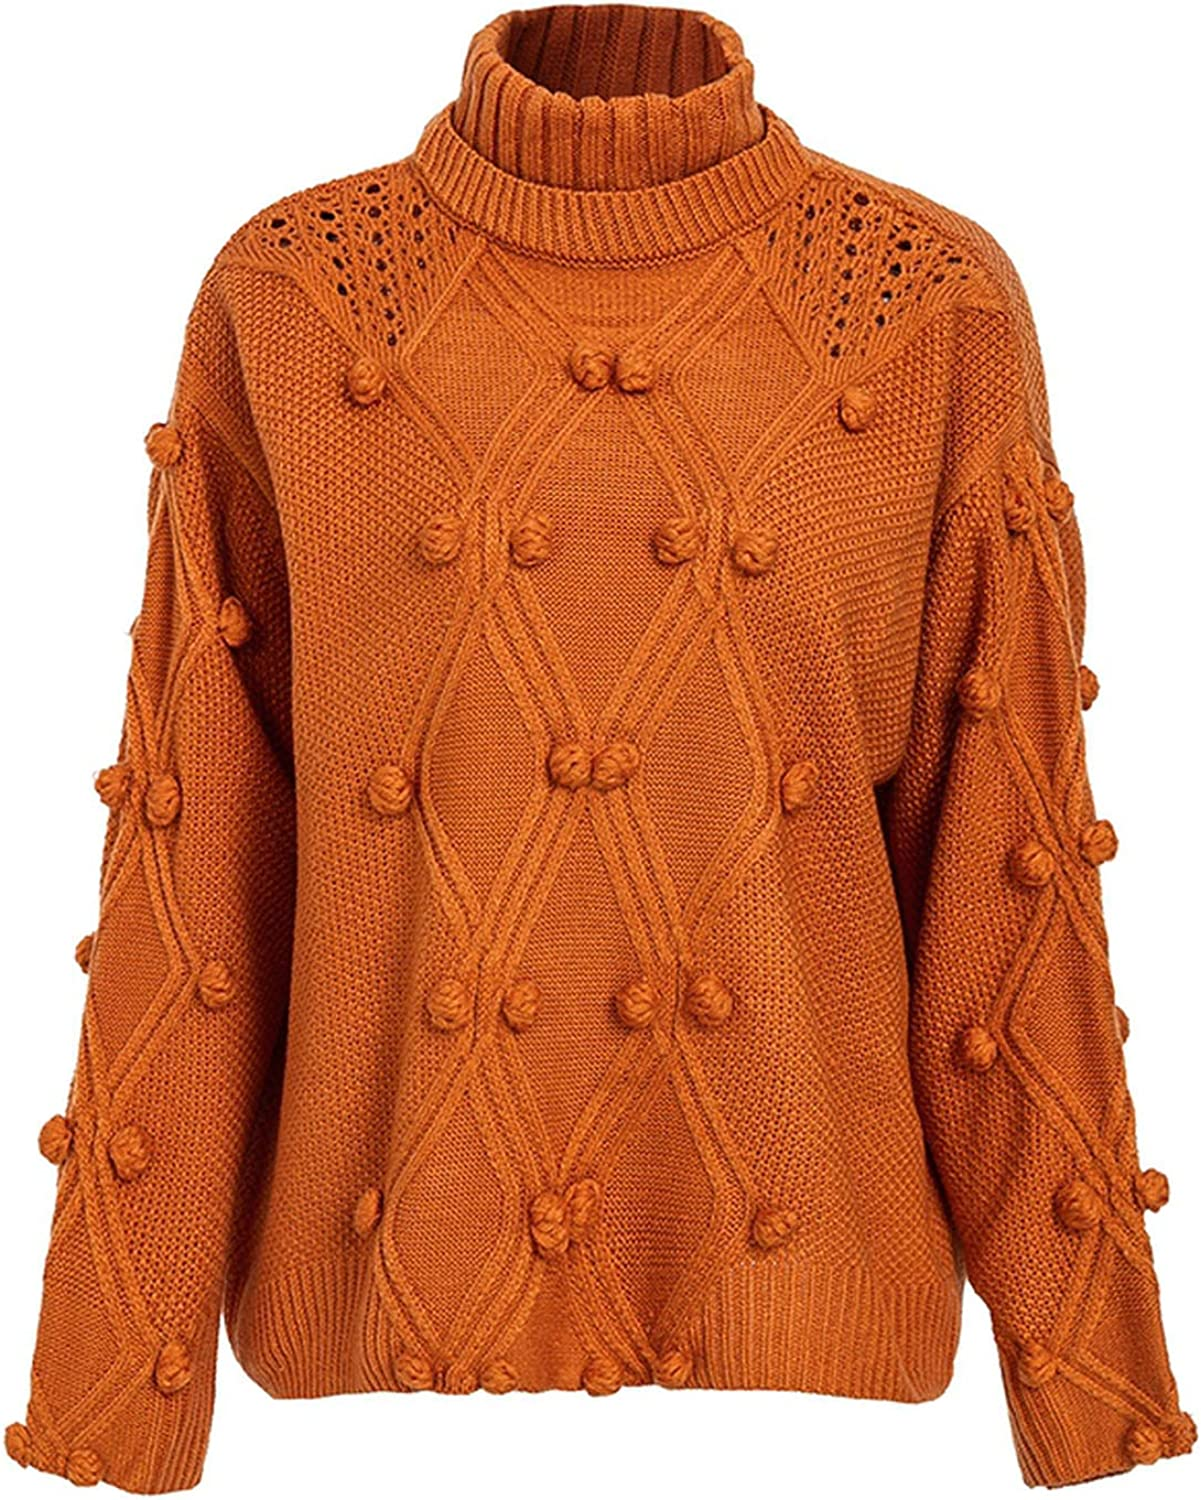 sensitives Turtleneck Sweater Women Pullover Hollow Out Knitted Sweaters Autumn Winter Fashion Jumpers